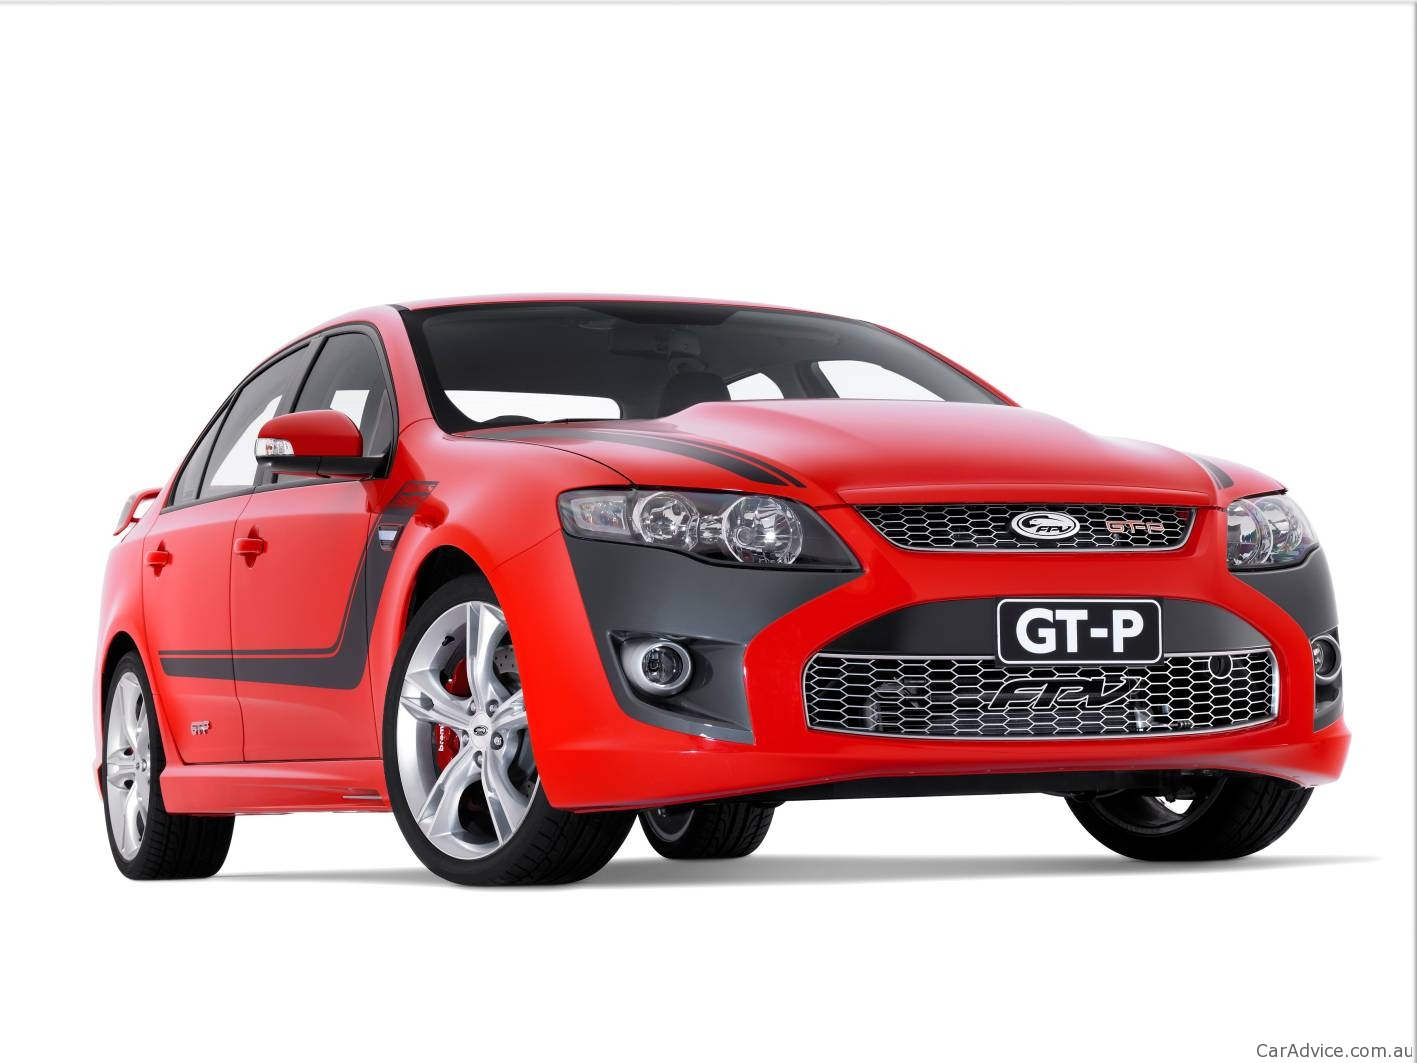 2010 Toyota Corolla S >> FPV GT-P Review - photos | CarAdvice